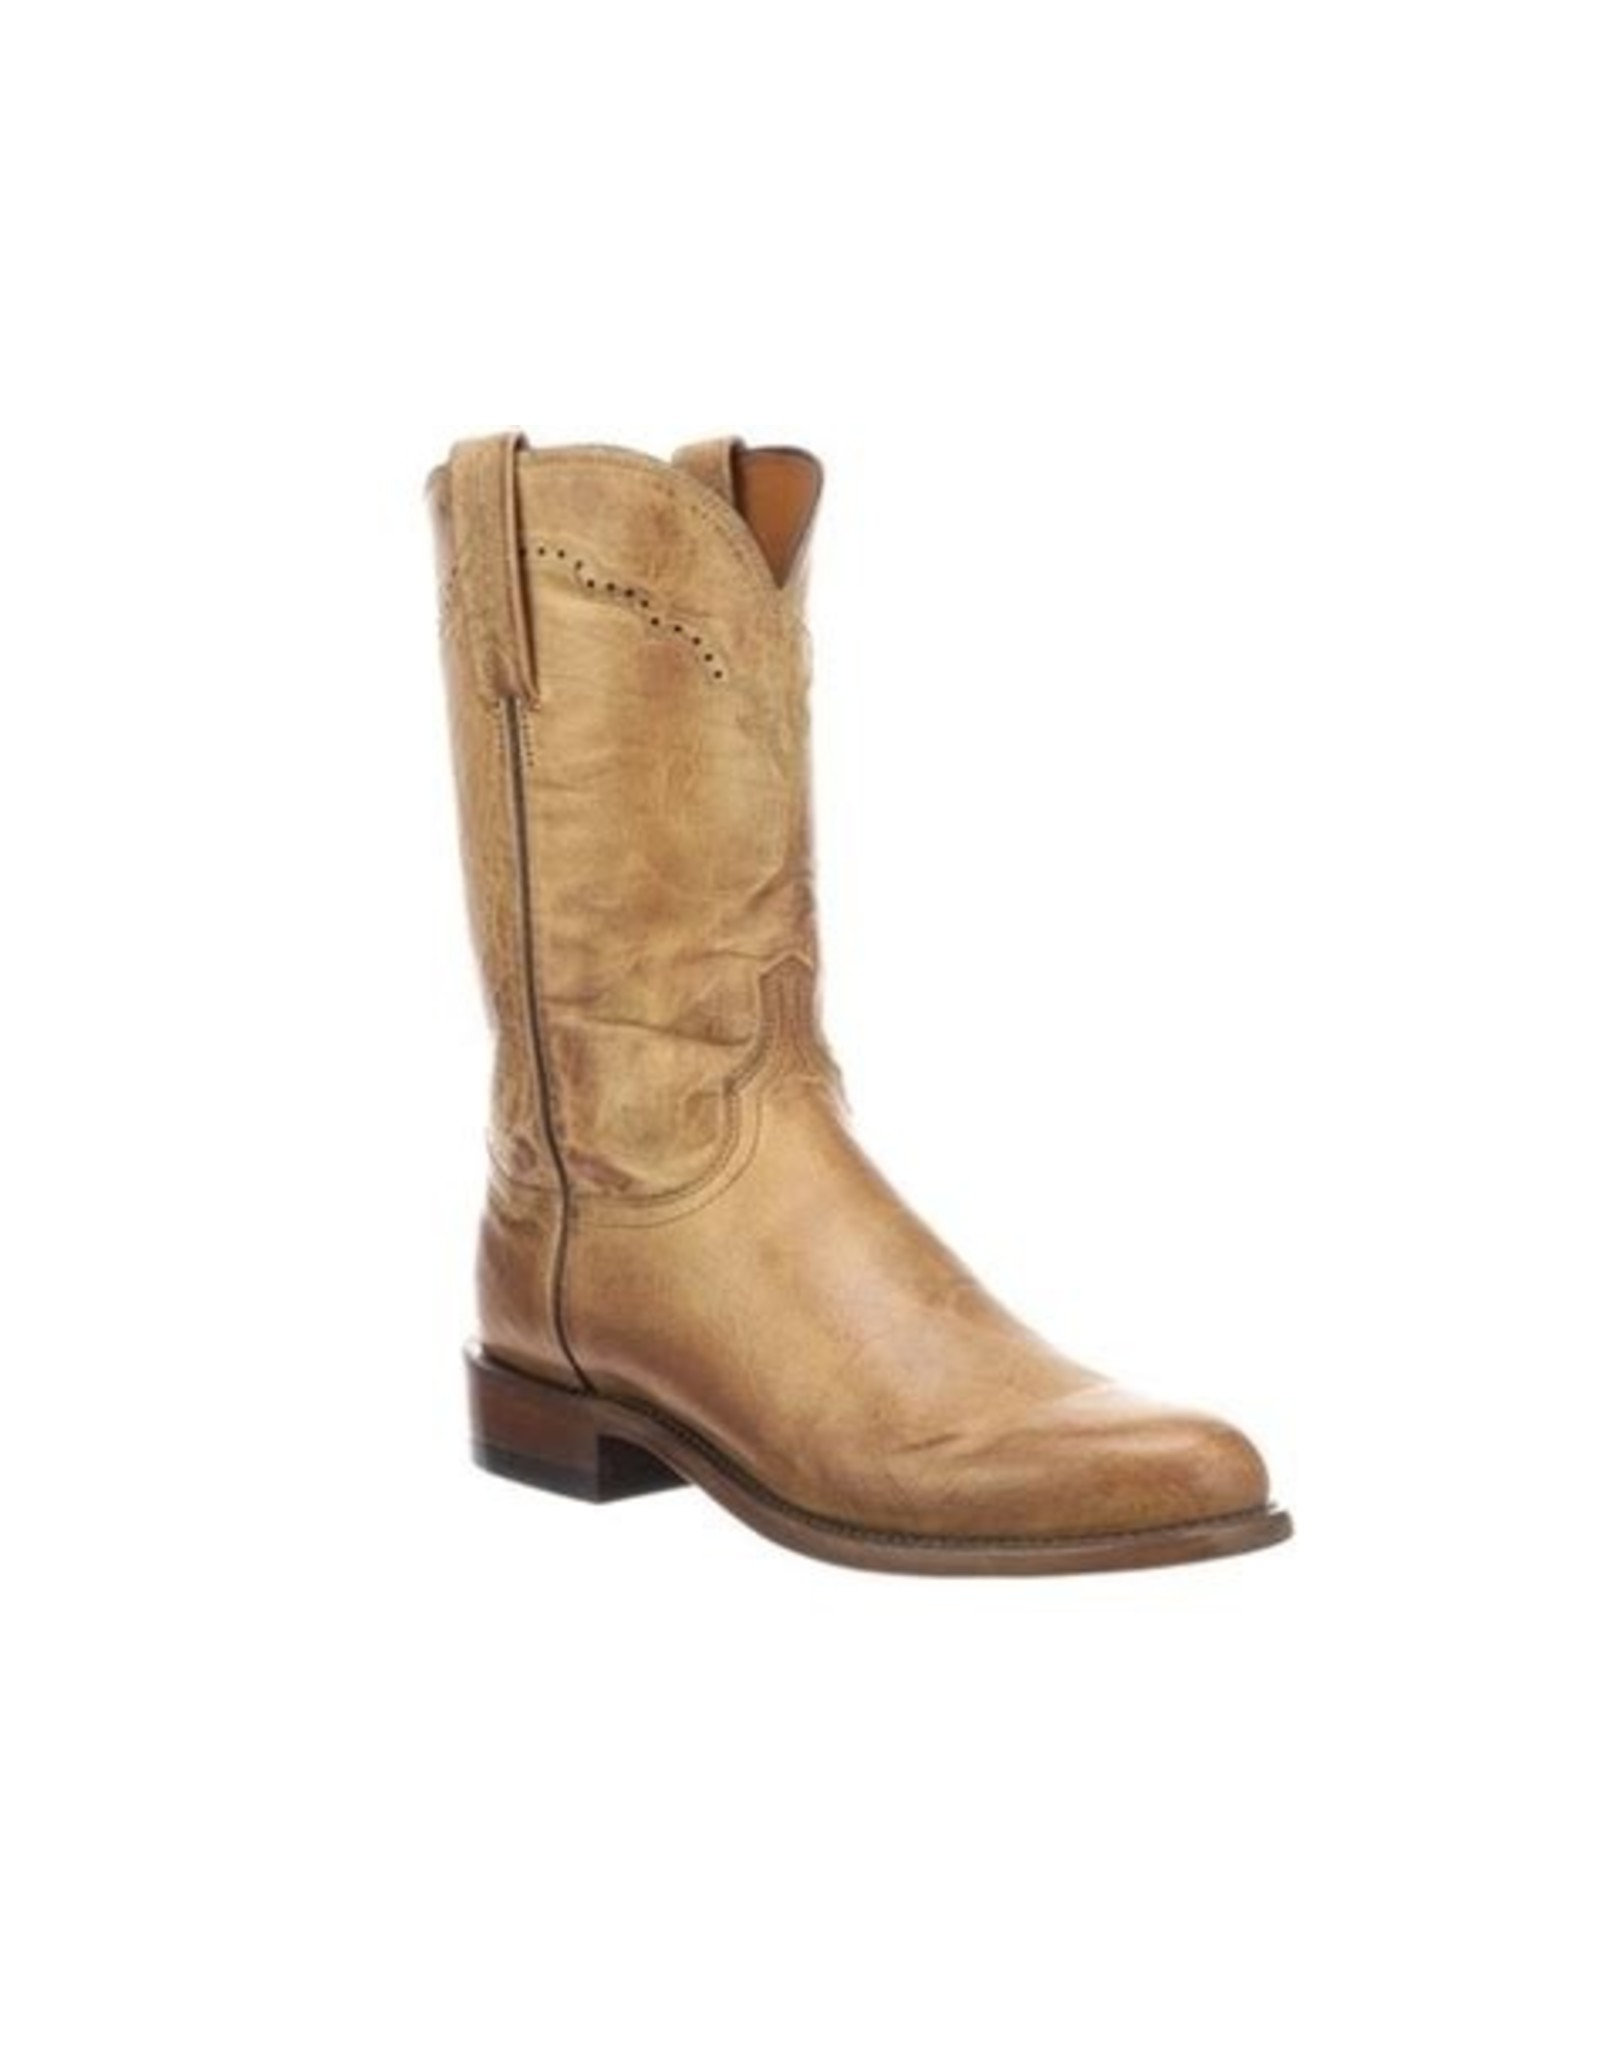 Boots-Men Lucchese M1017.C2 Shane Tan Goat